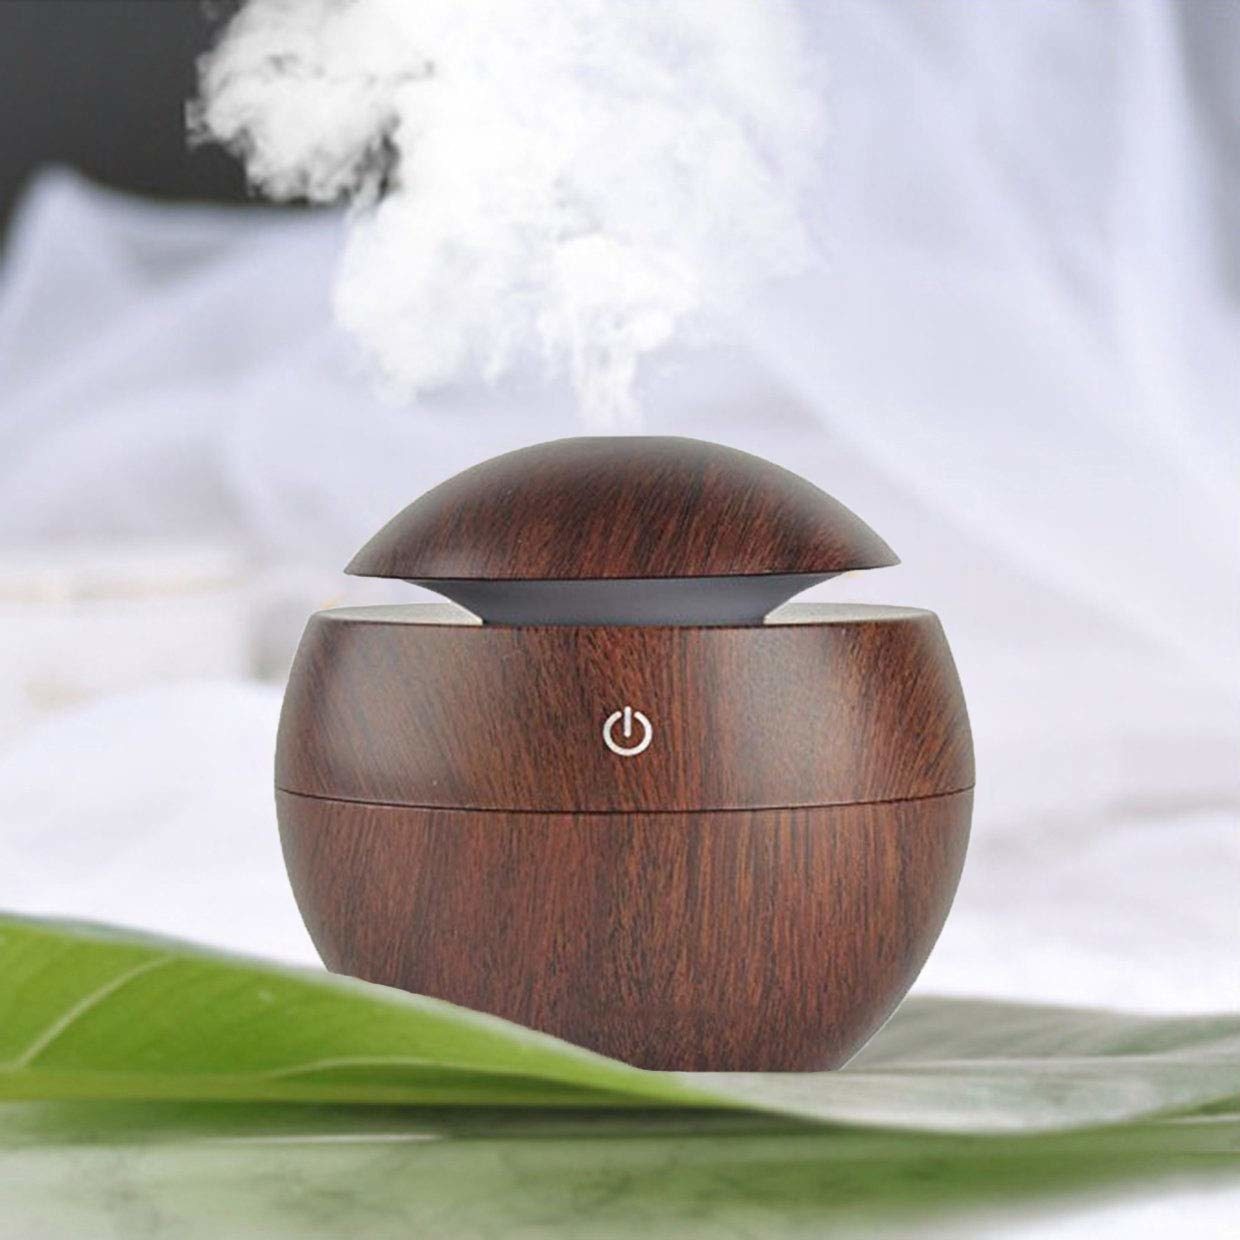 A brown diffuser on a table, releasing essential oils in the air